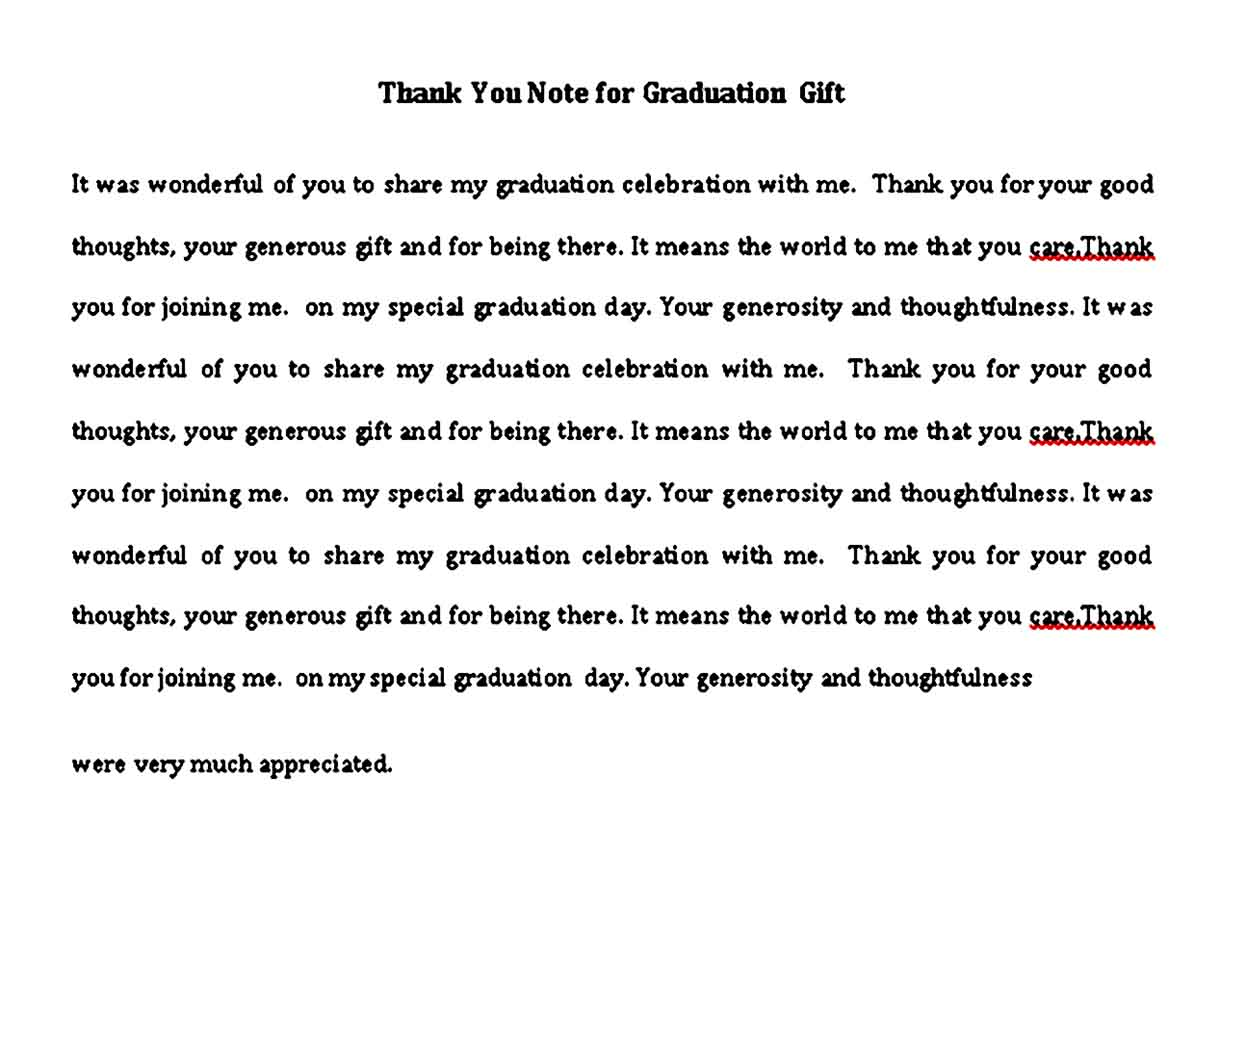 thank you note for graduation gift